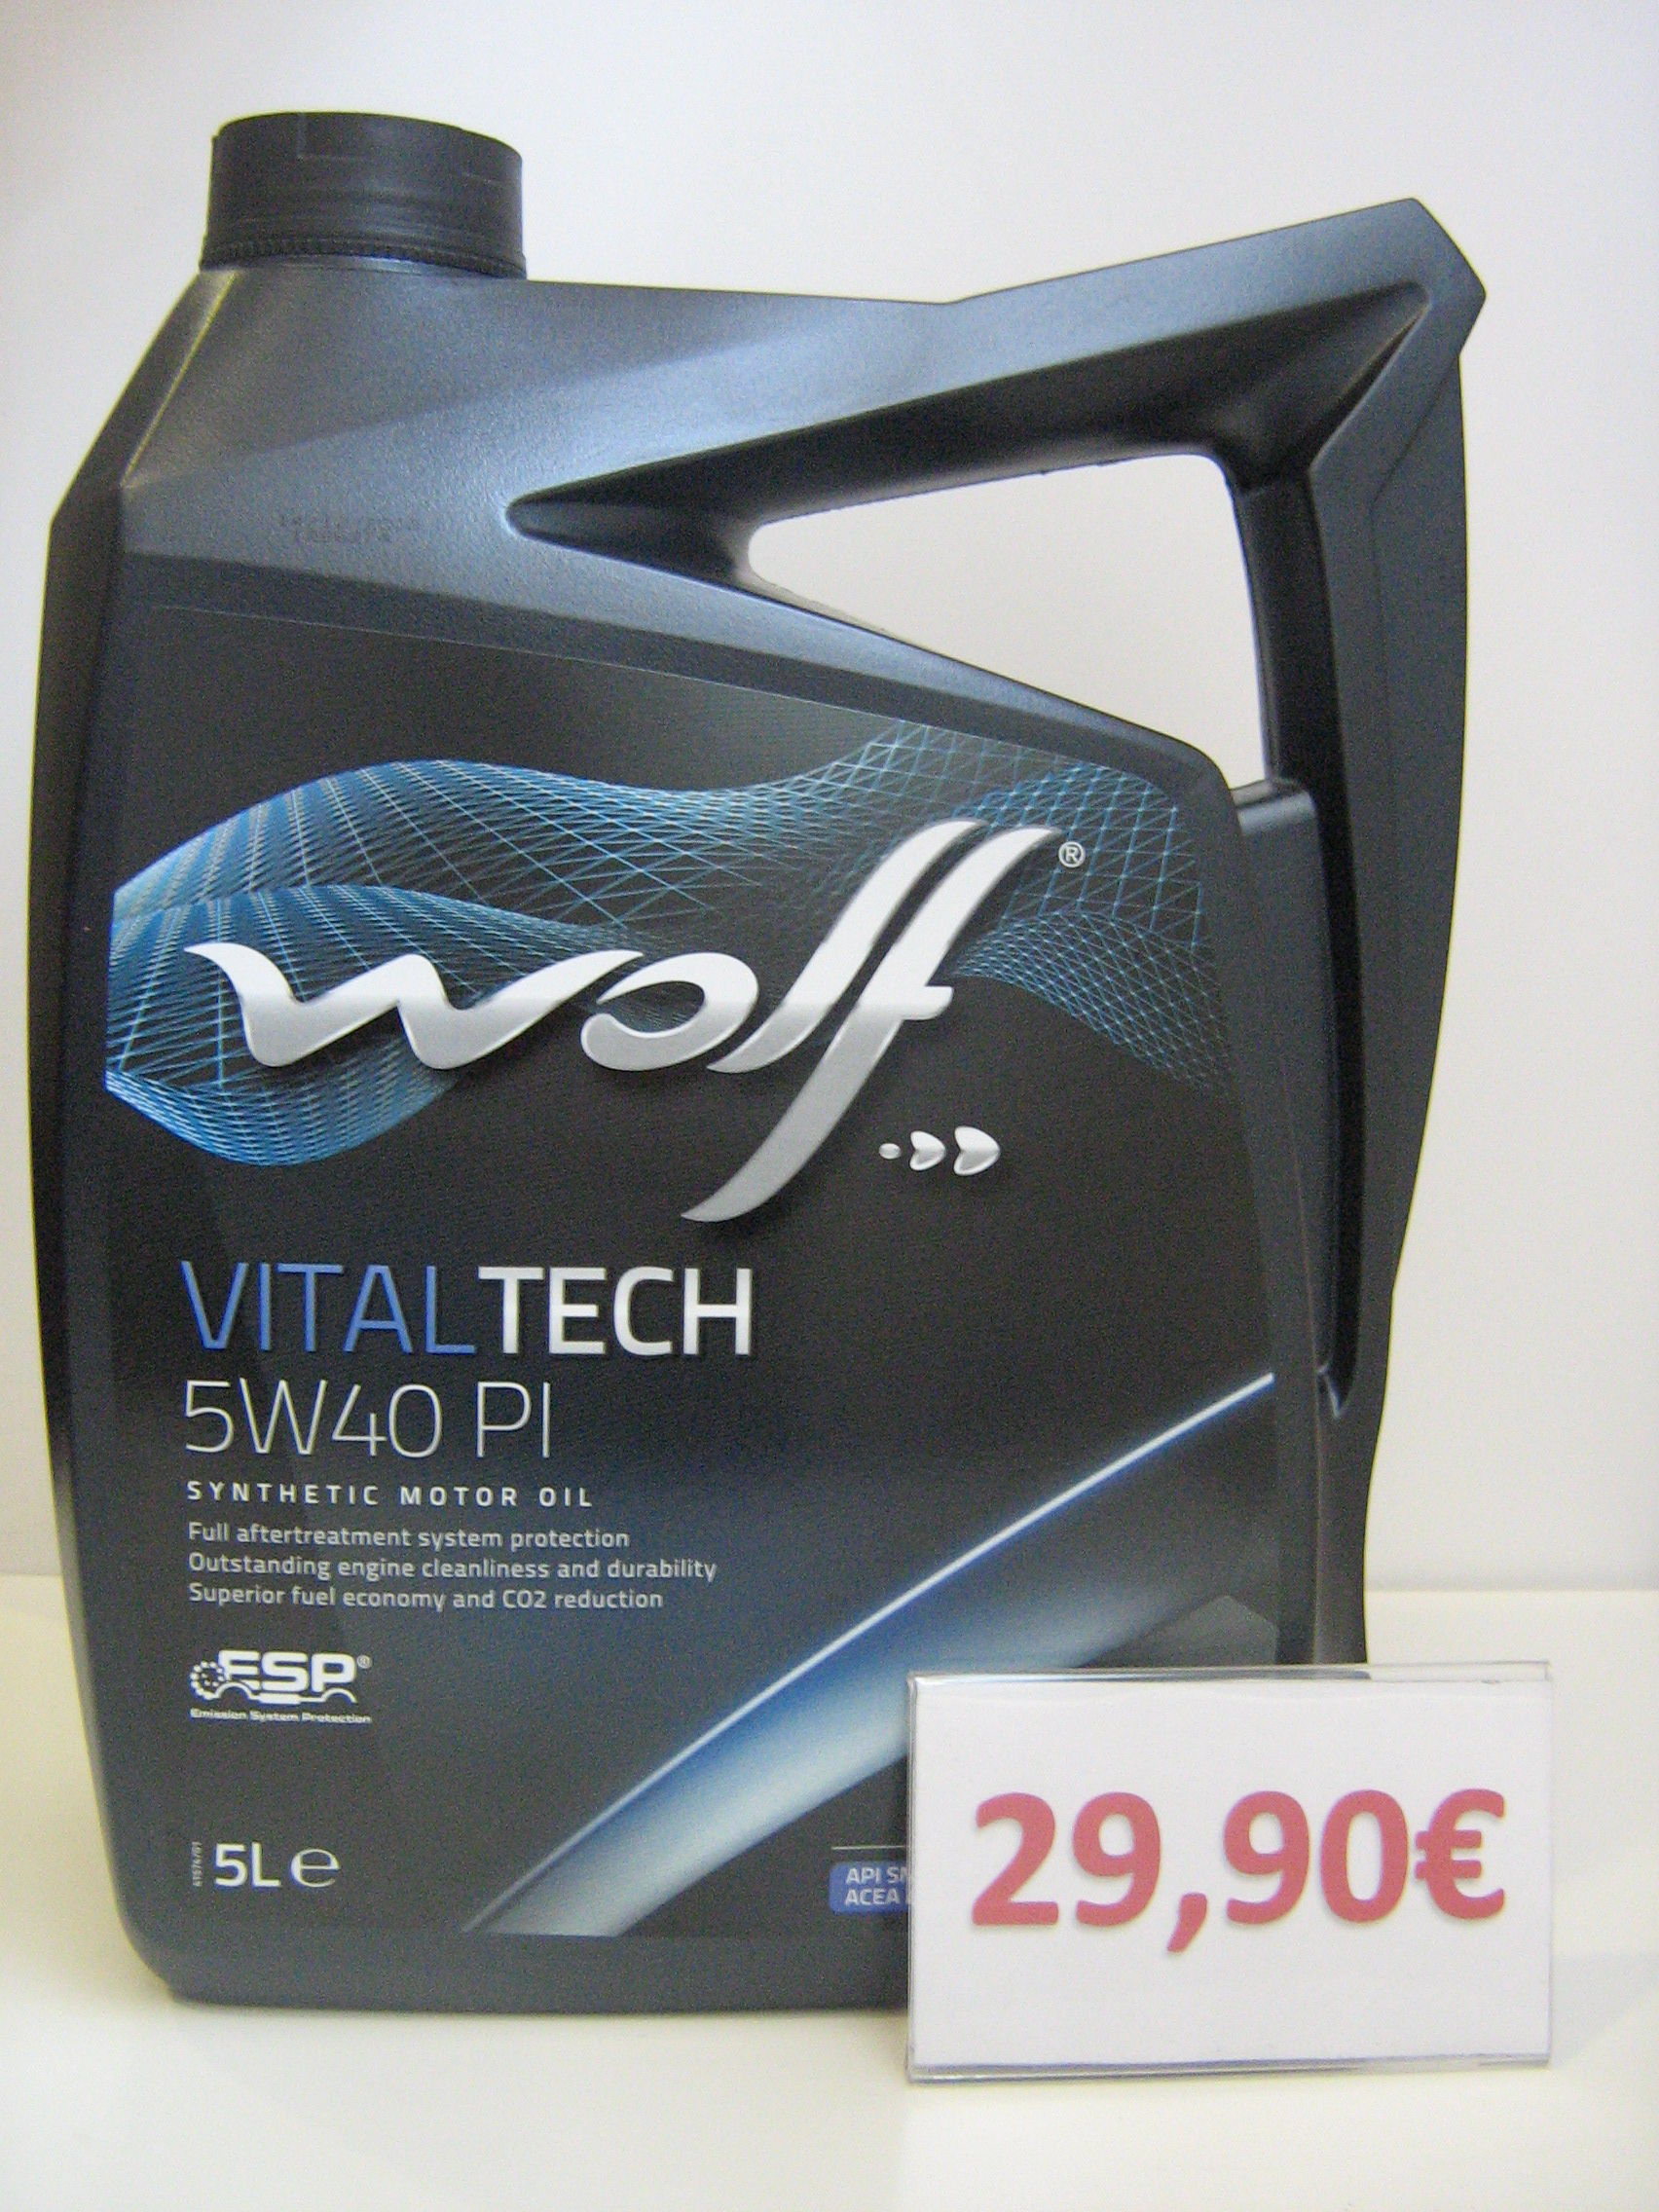 WOLF VITALTECH 5W40 PI: Servicios de Safety Car